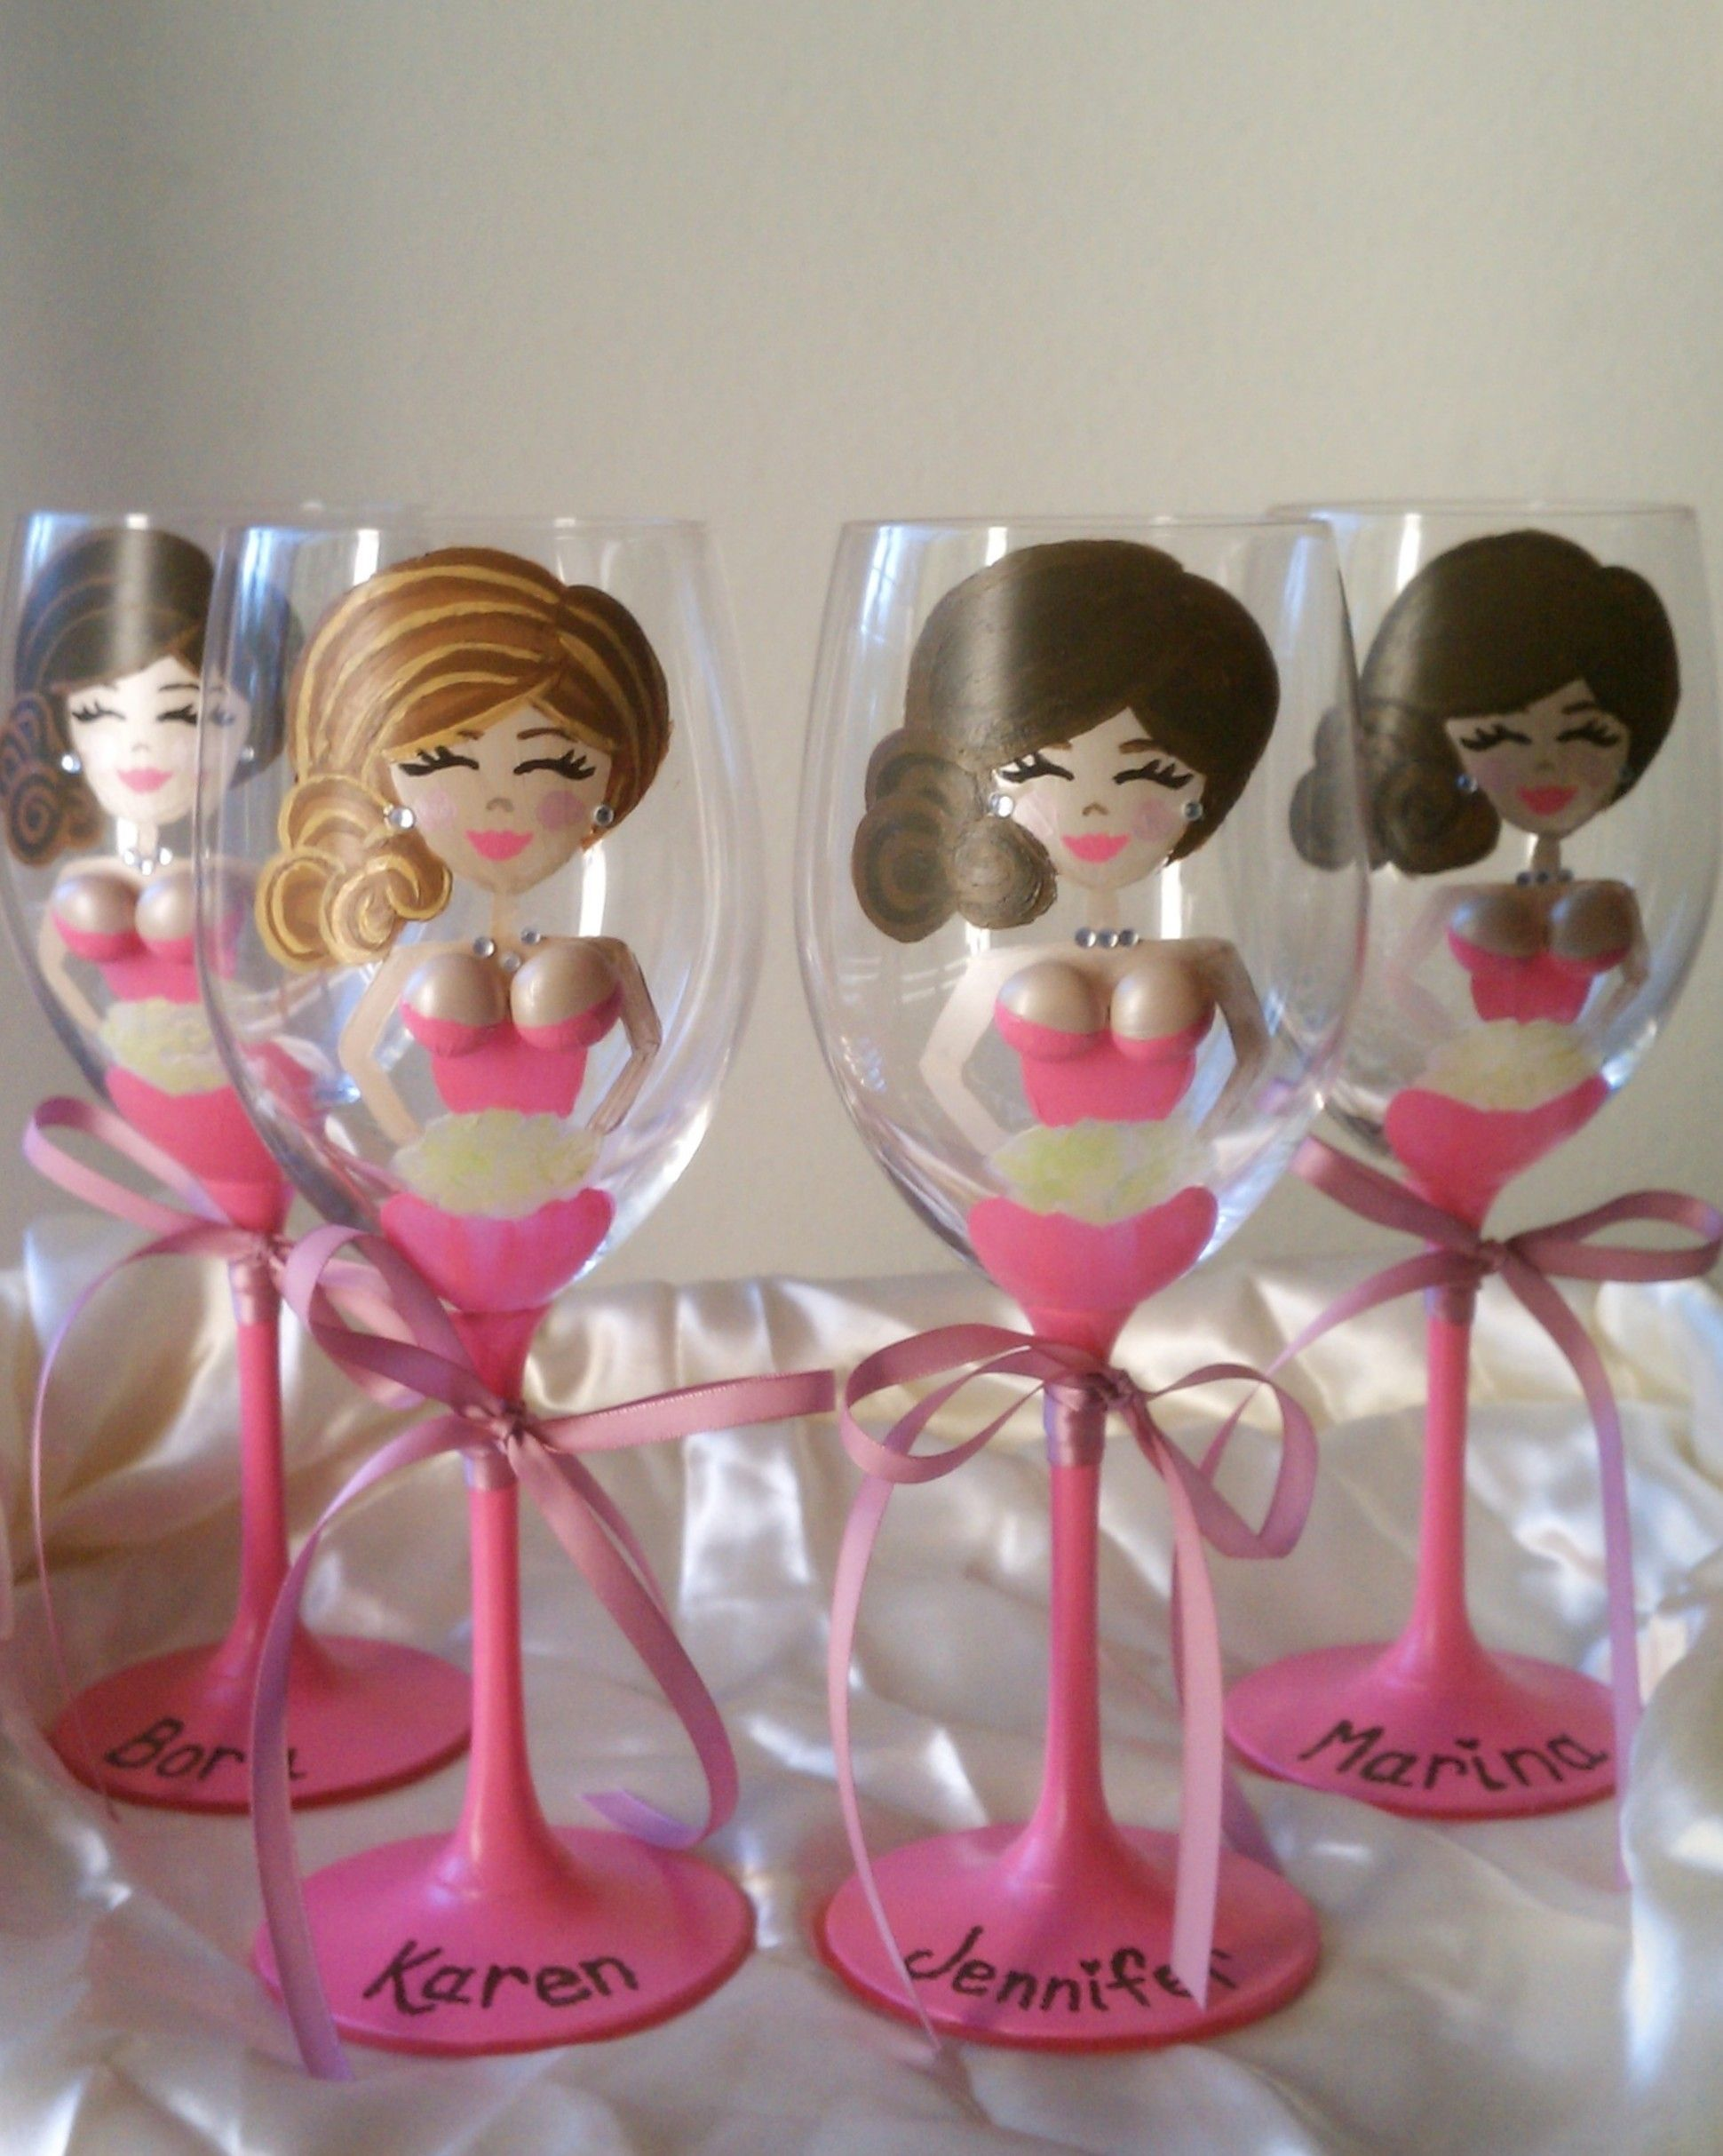 How to decorate wine glasses for bridesmaids - Personalized Boob Bridesmaid Wine Glasses By Glass Bellas